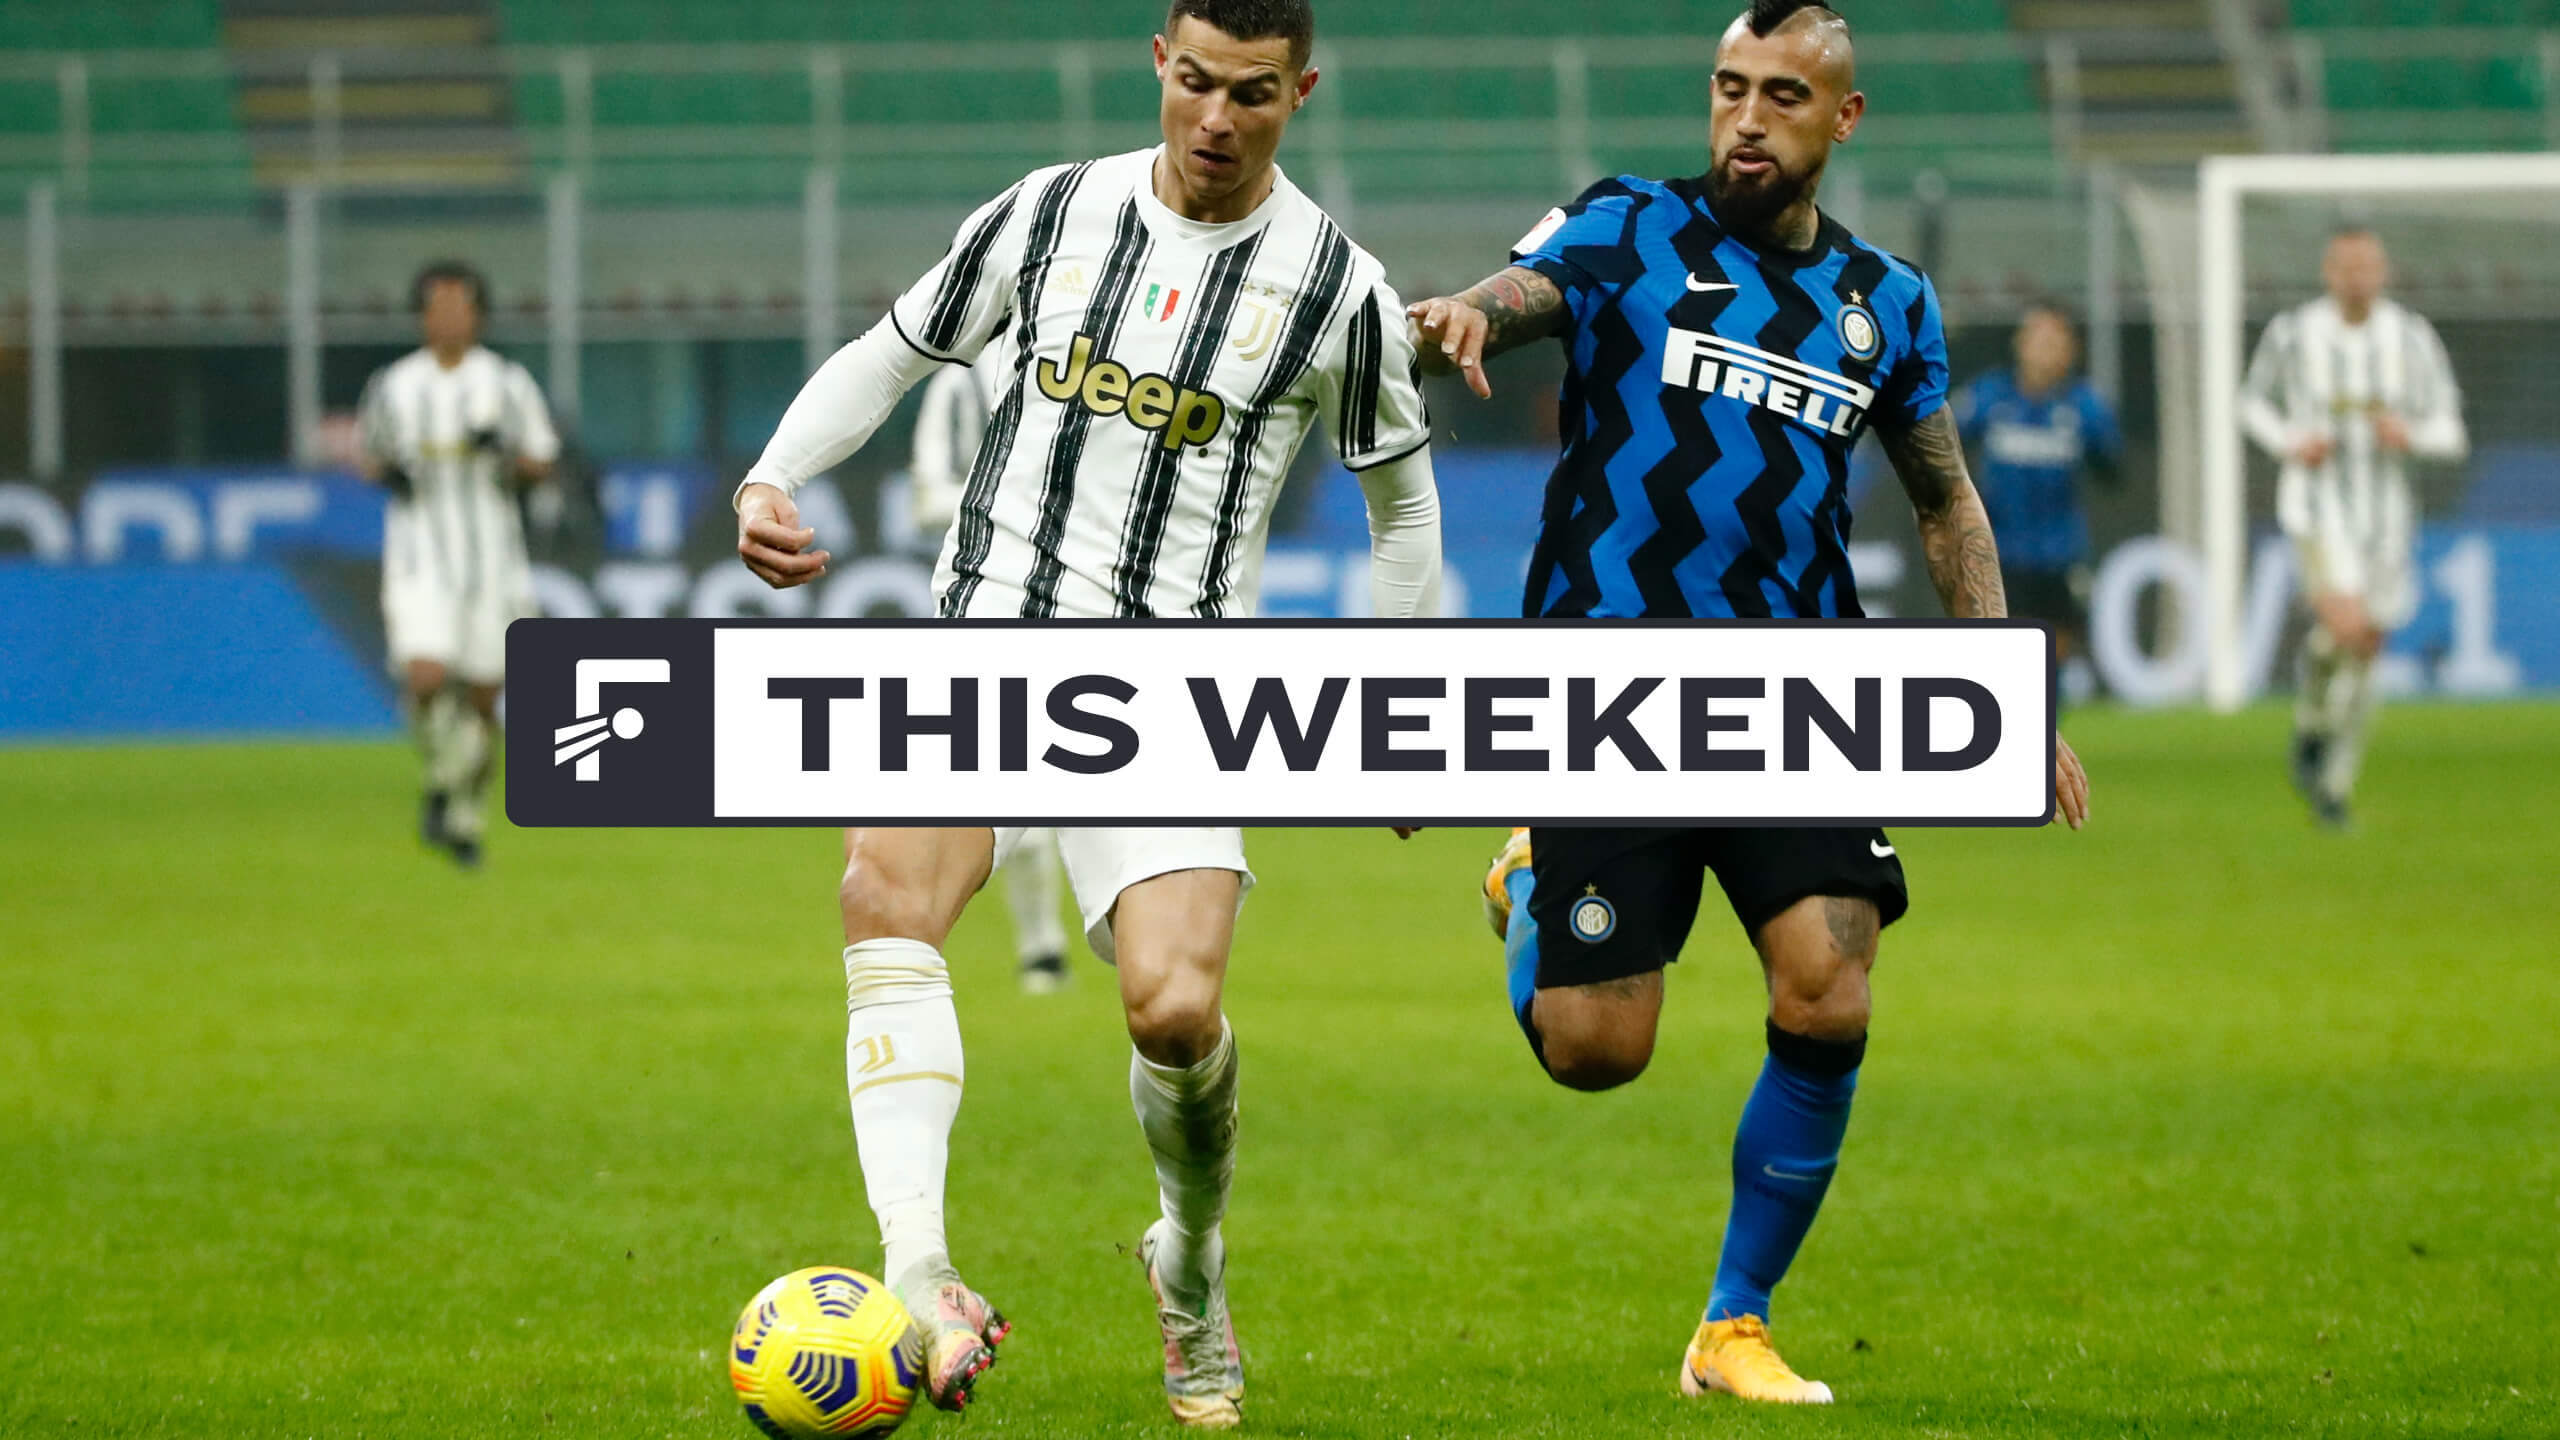 This Weekend: Derby d'Italia, FA Cup Final, Turkey's title battle and Superclásico